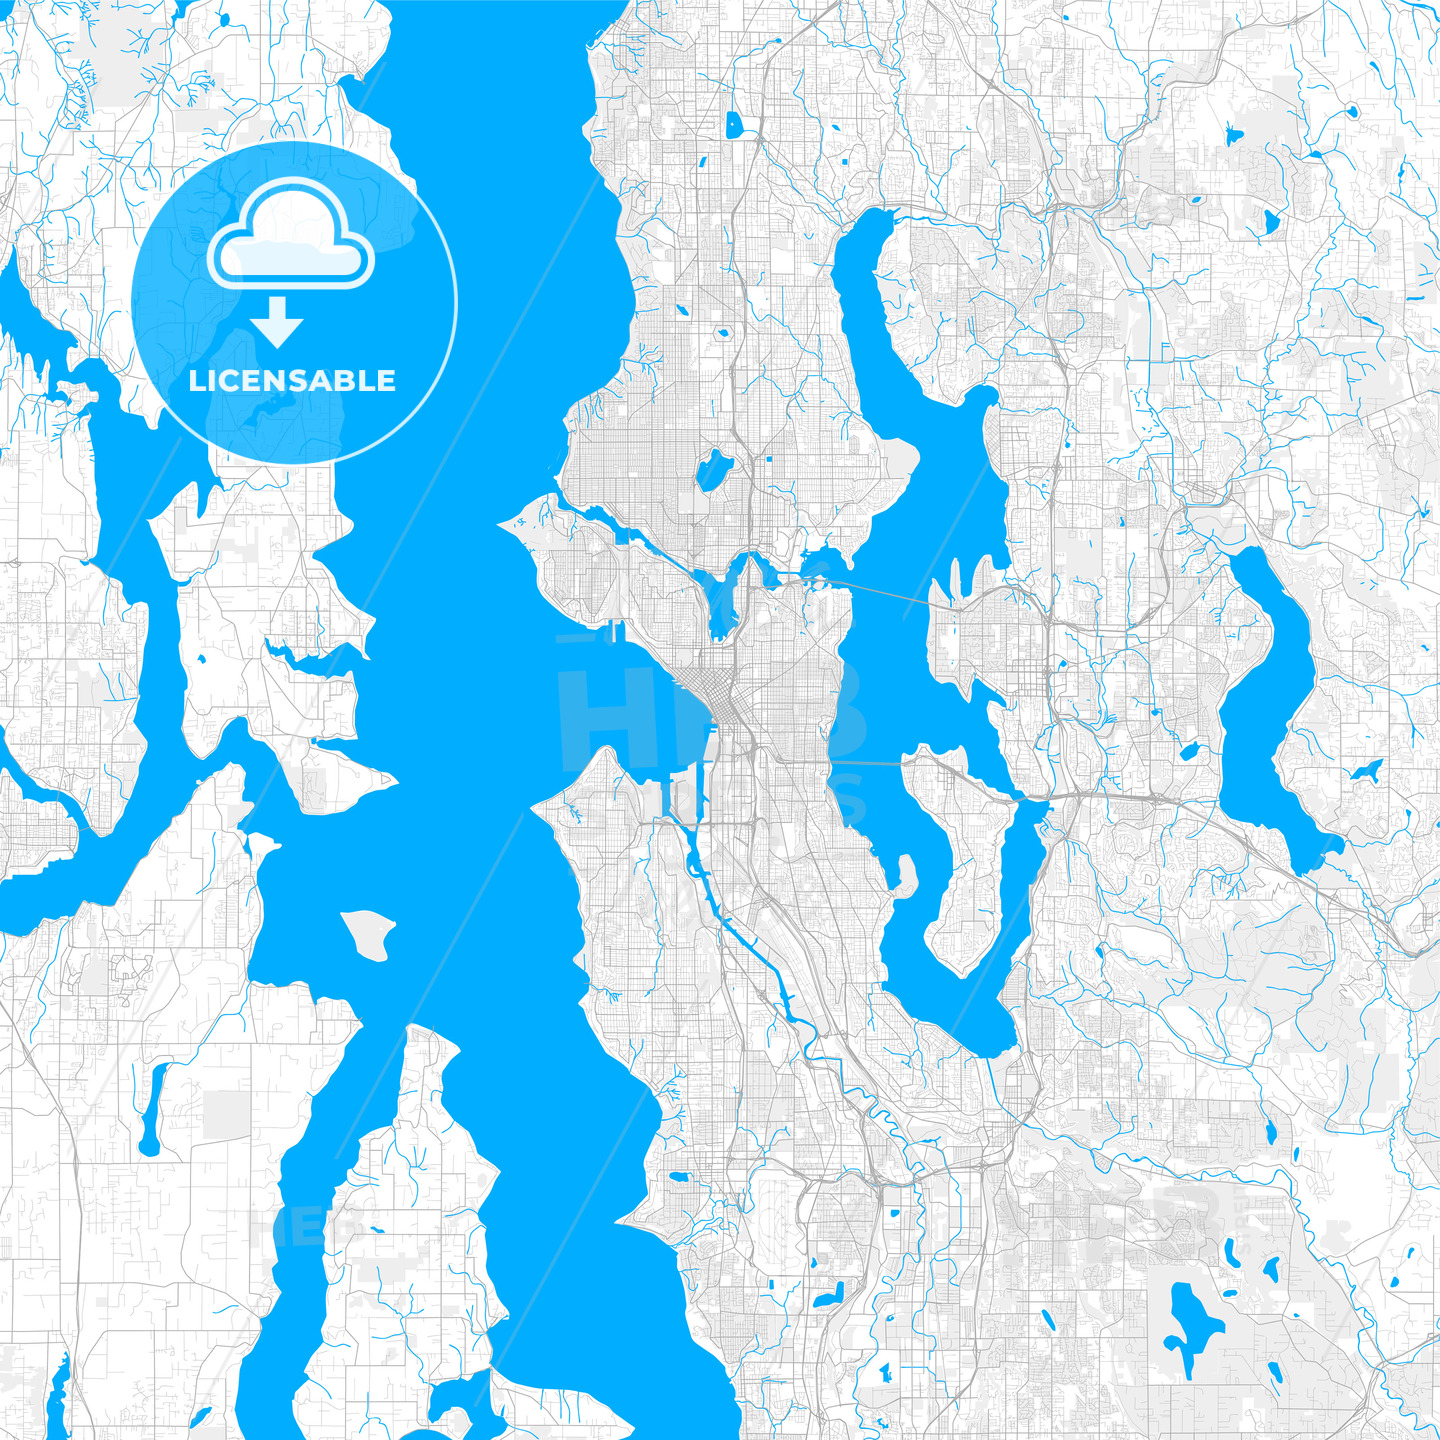 Rich detailed vector map of Seattle, Washington, U.S.A.